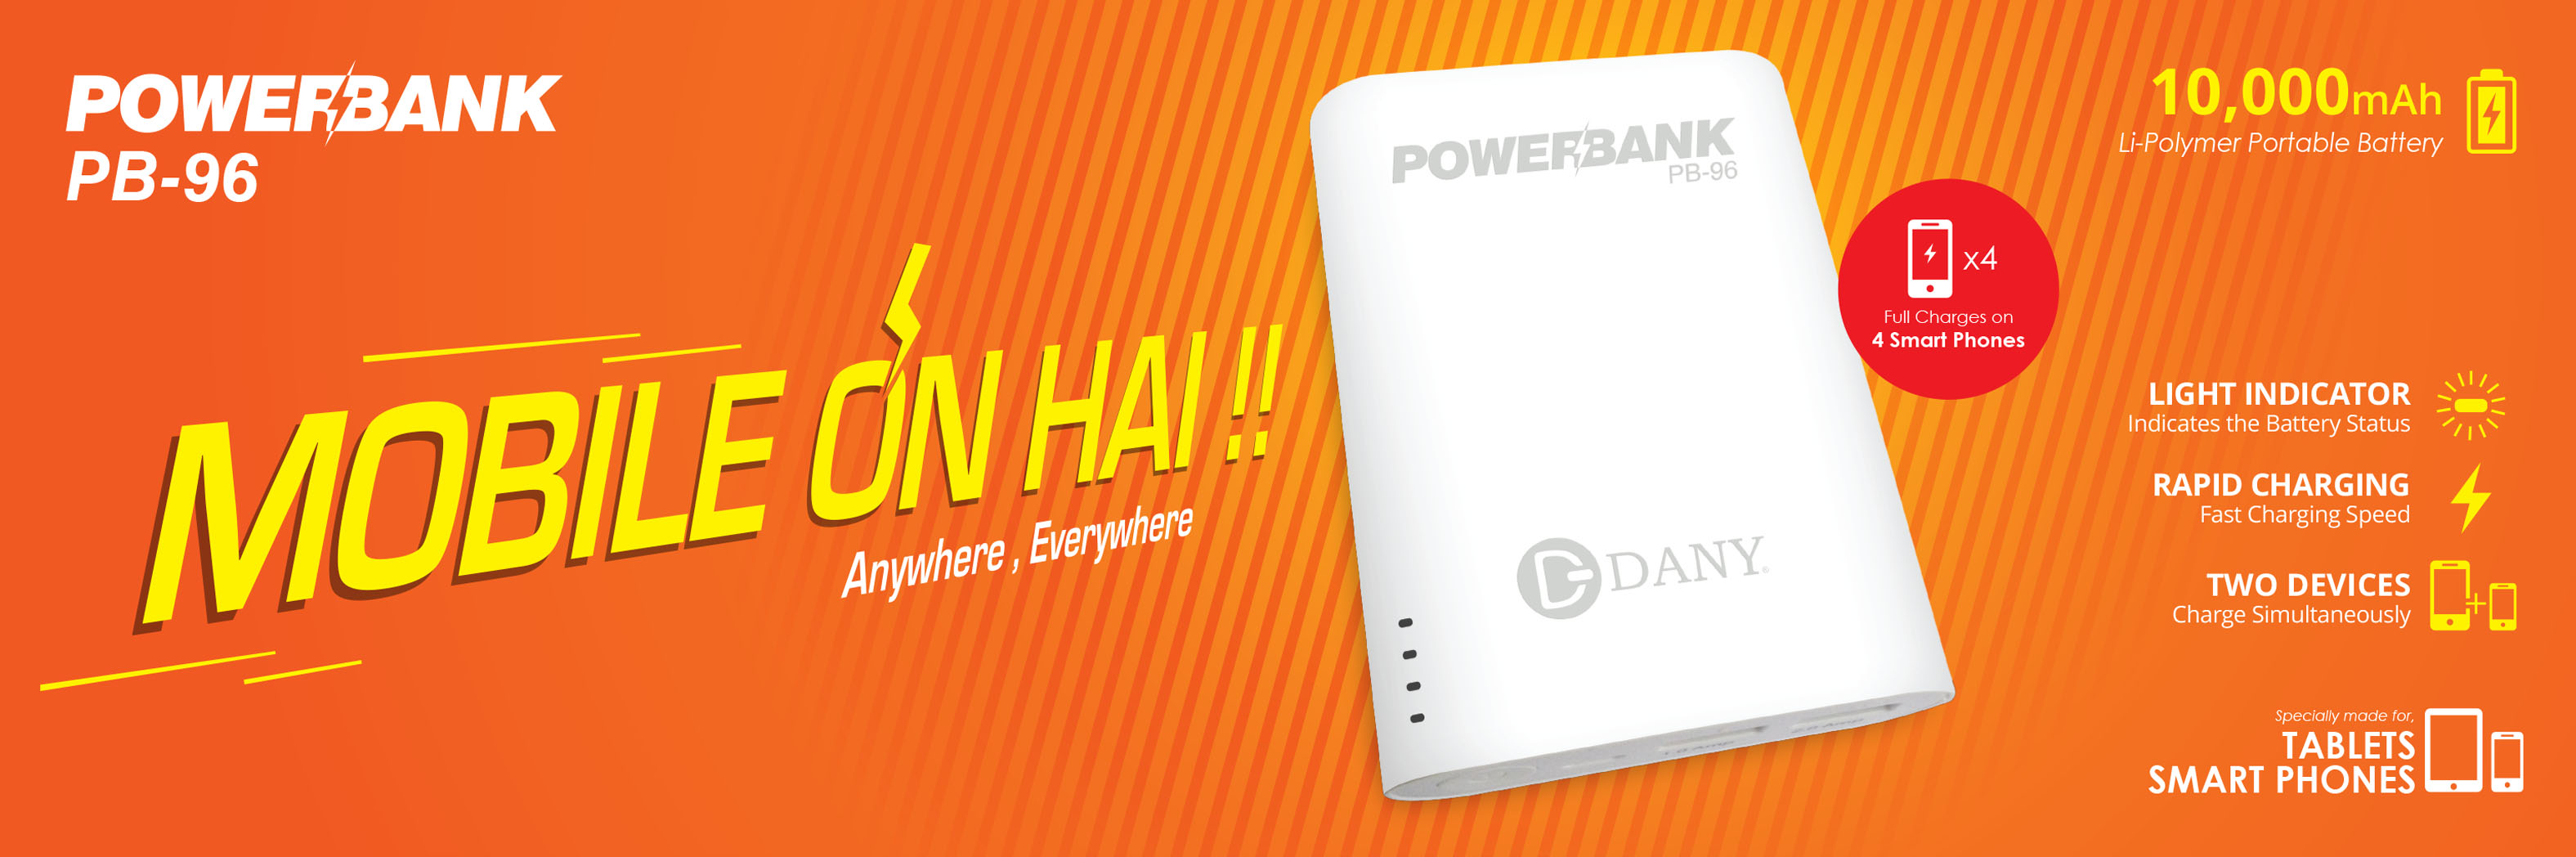 Powerbank_10k_Banner1.jpg